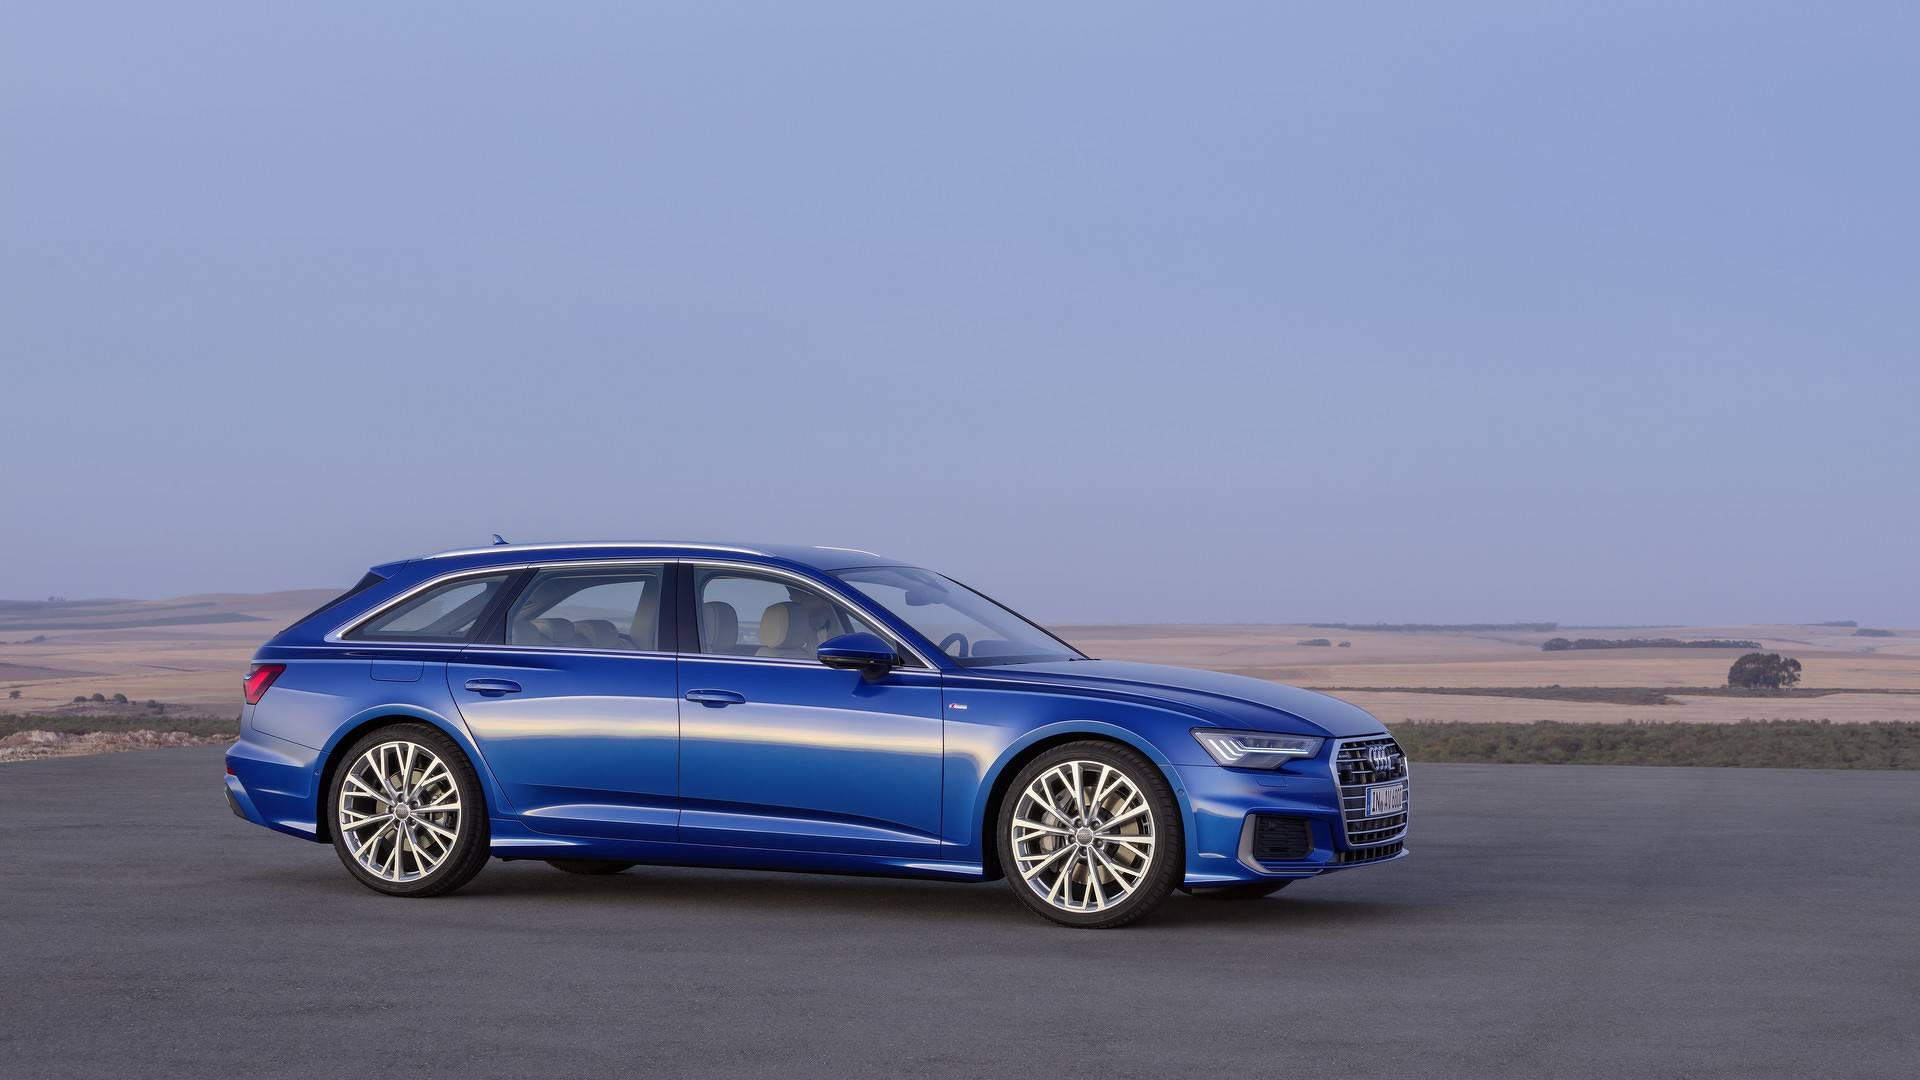 2019 Audi A6 Avant Is A Gorgeous Wagon Loaded With Technology